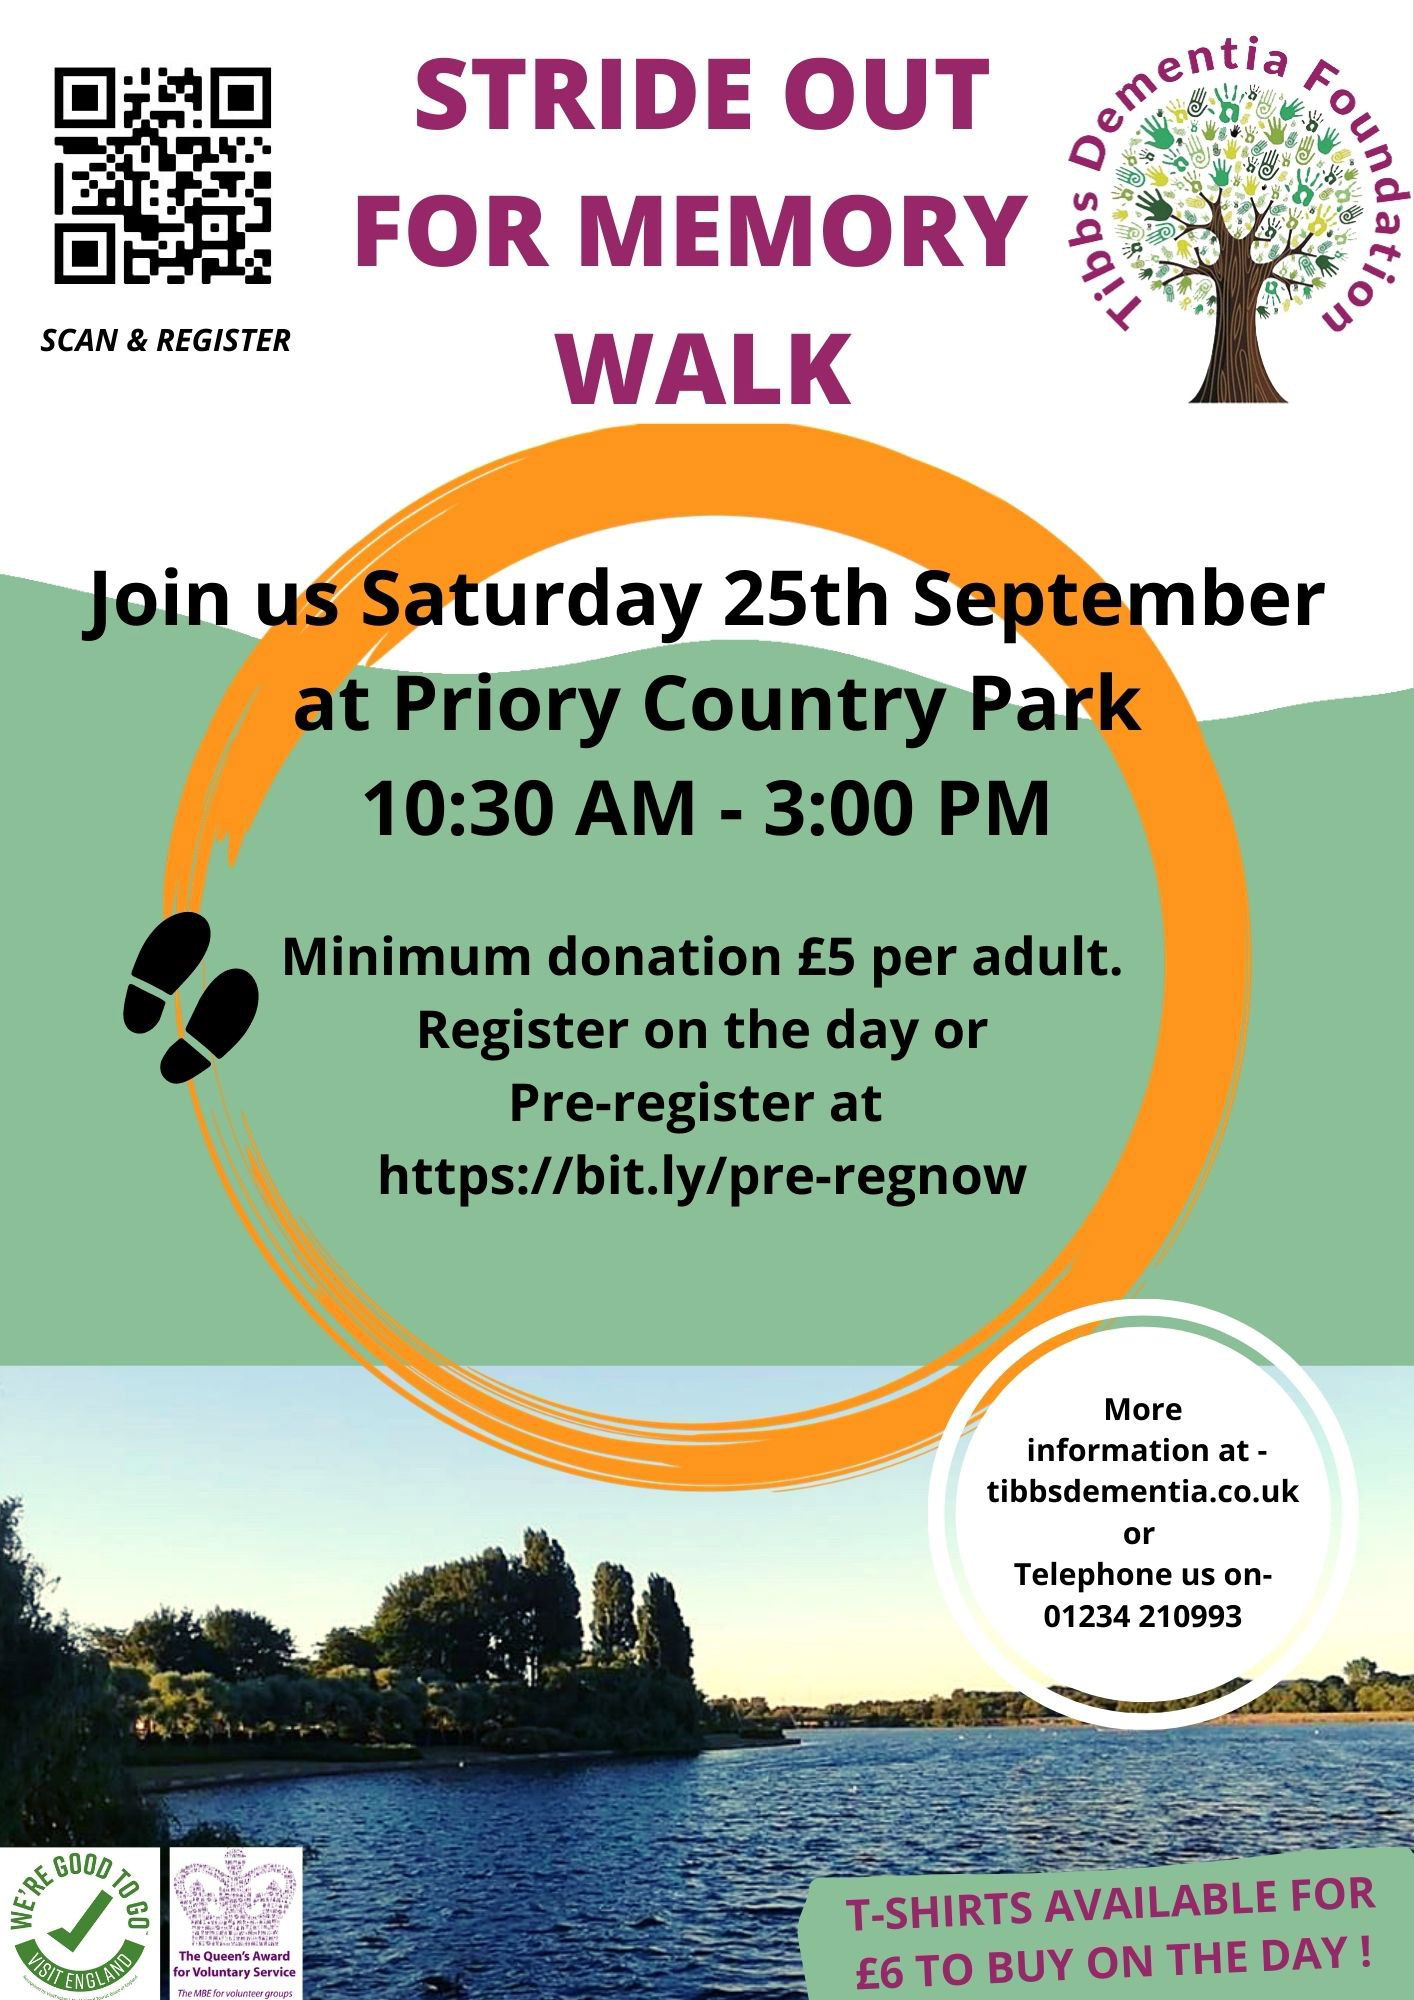 TIBBS STRIDE OUT FOR MEMORY WALK